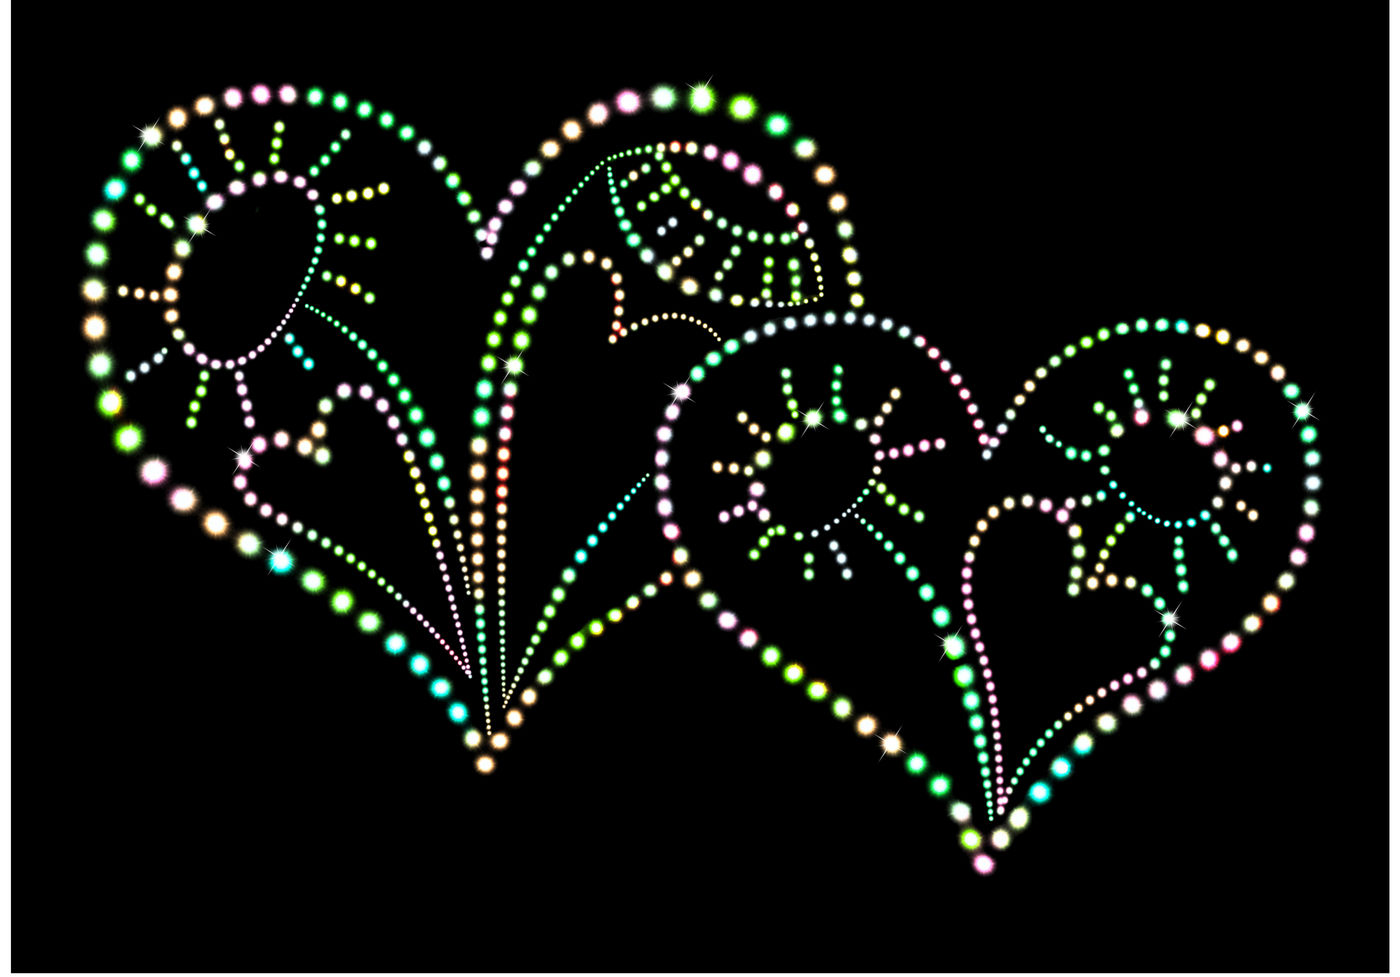 Image Bright Glowing Heart With Pattern And Individual